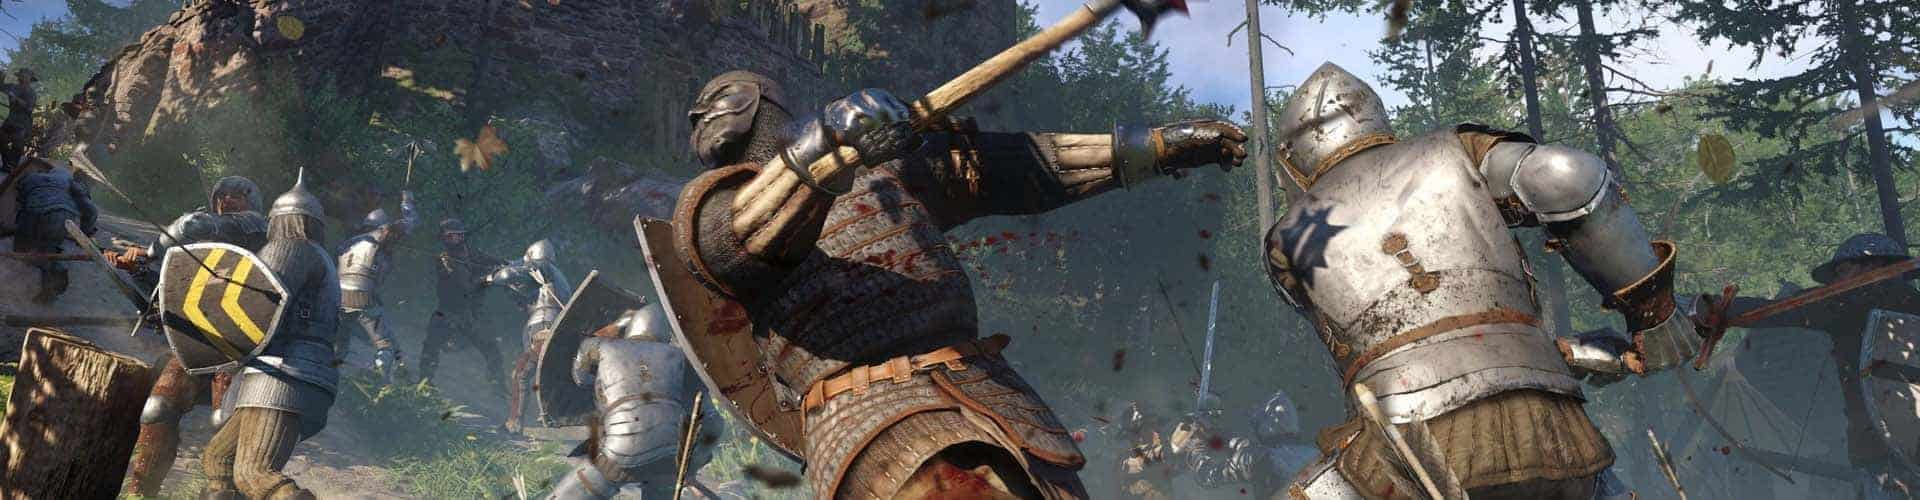 Best Settings For Kingdom Come: Deliverance